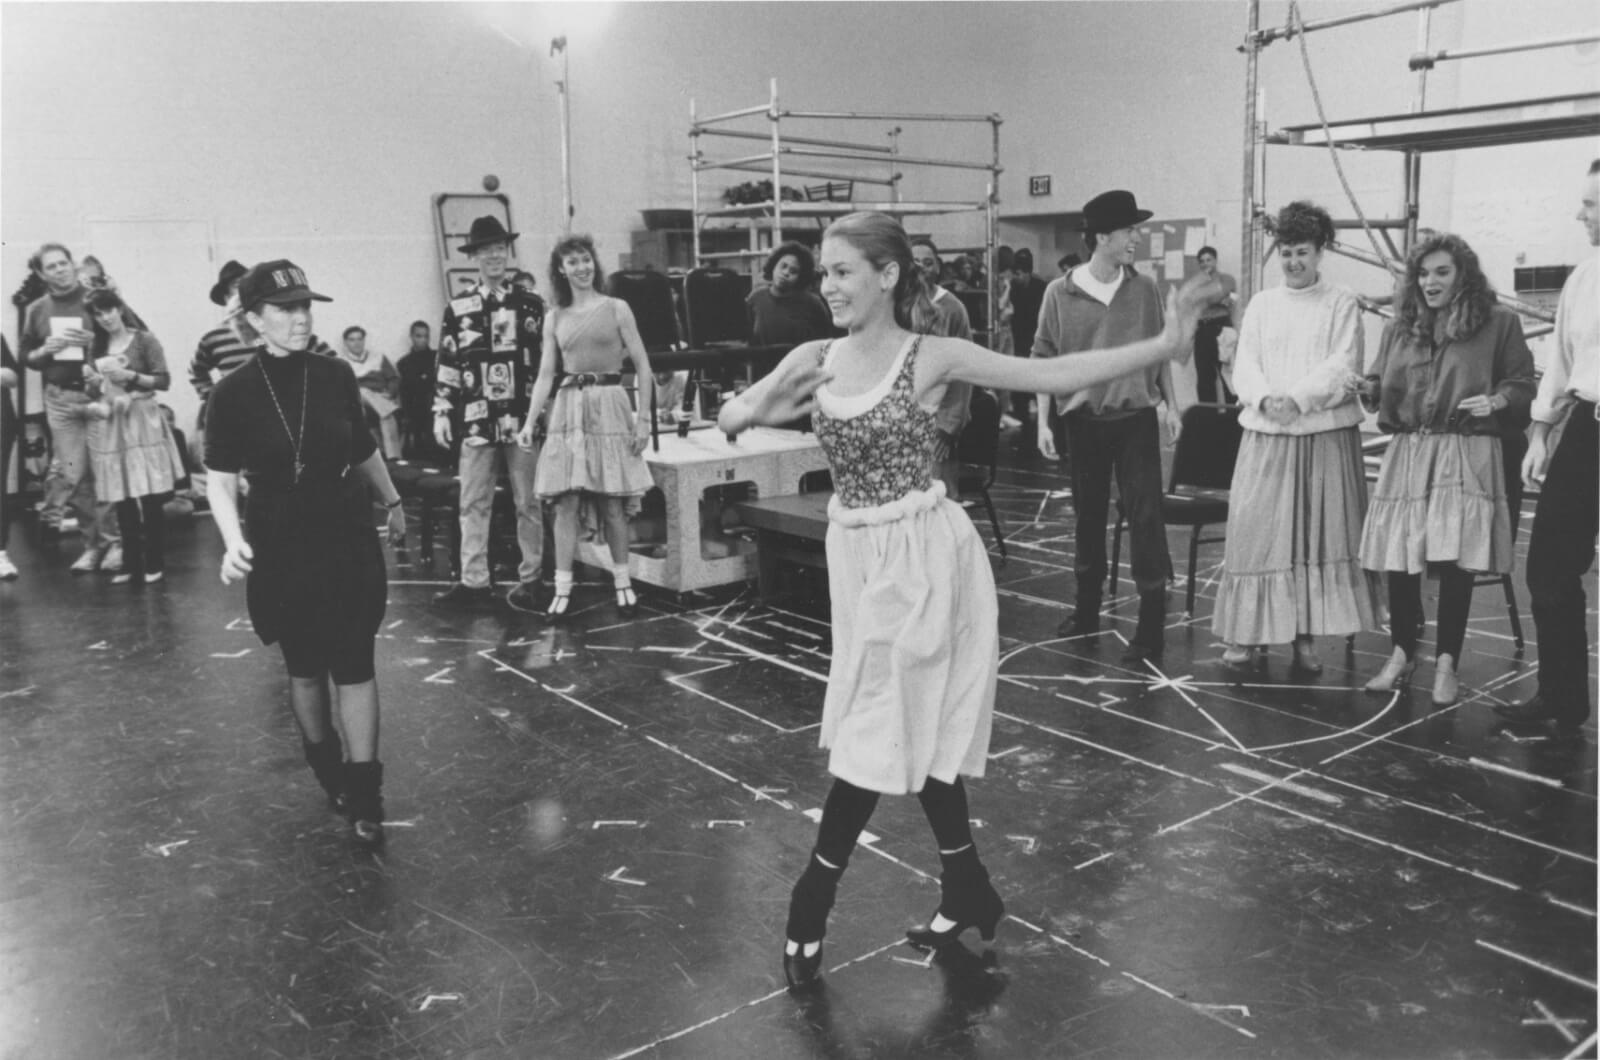 A black and white photo of Susan Stroman rehearsing for Show Boat with Kim (Tammy Amerson). Other ARTISTS watch her in the background.